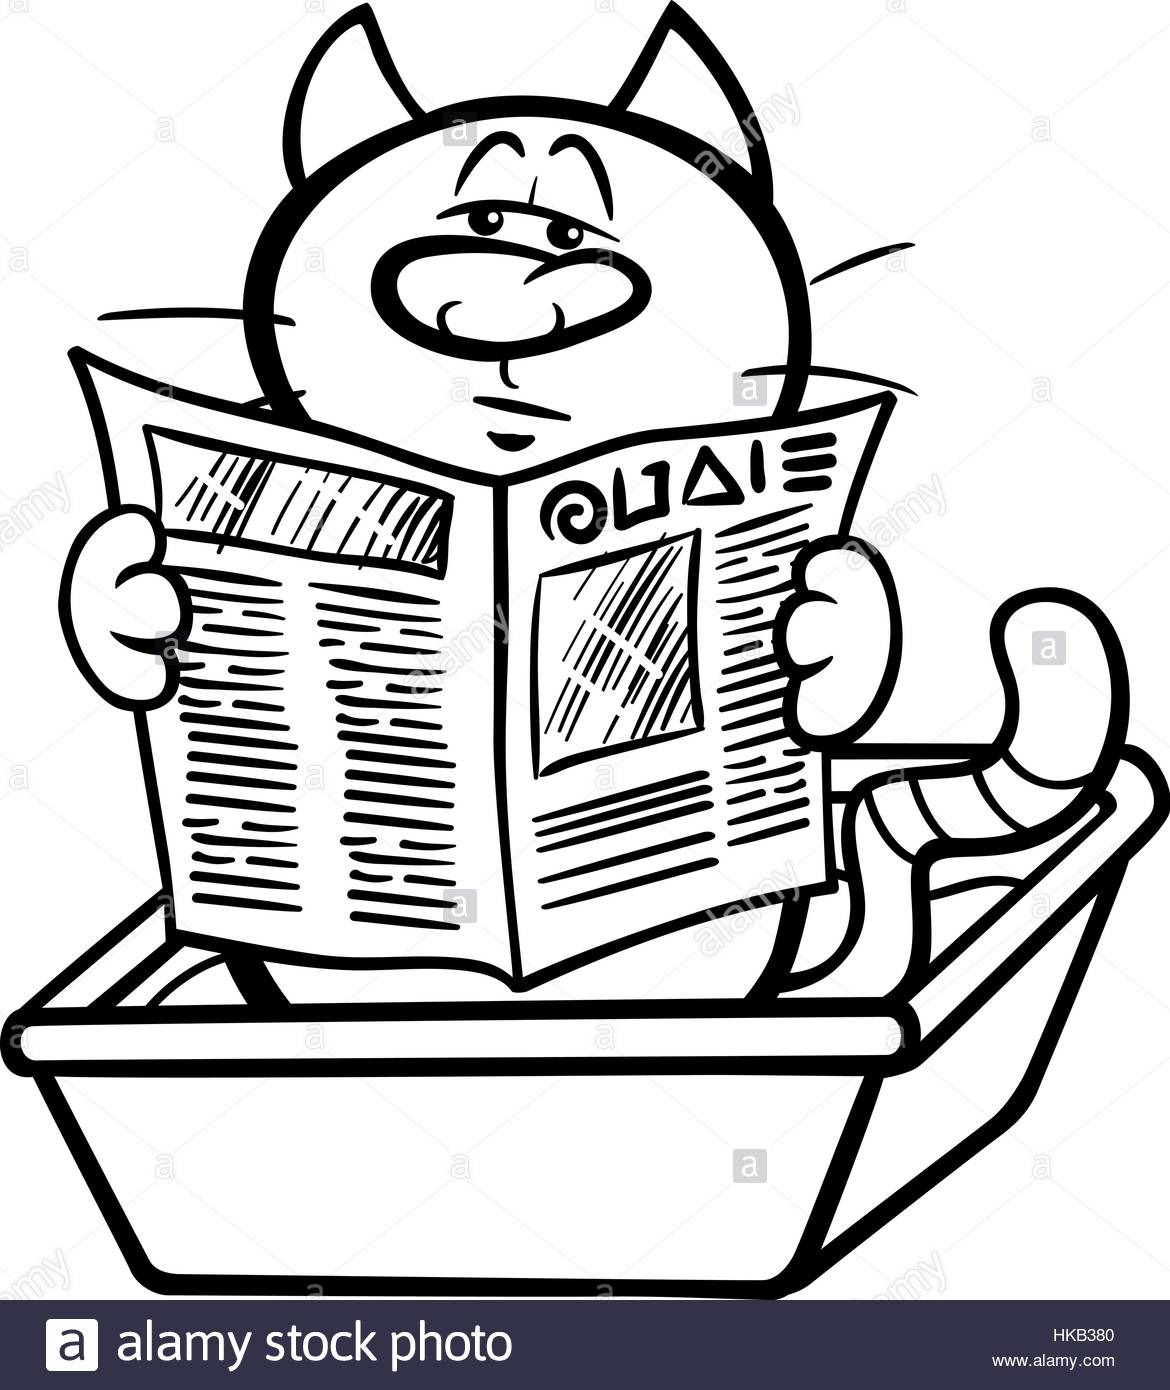 1170x1390 Black And White Cartoon Illustration Of Cat Reading A Newspaper In